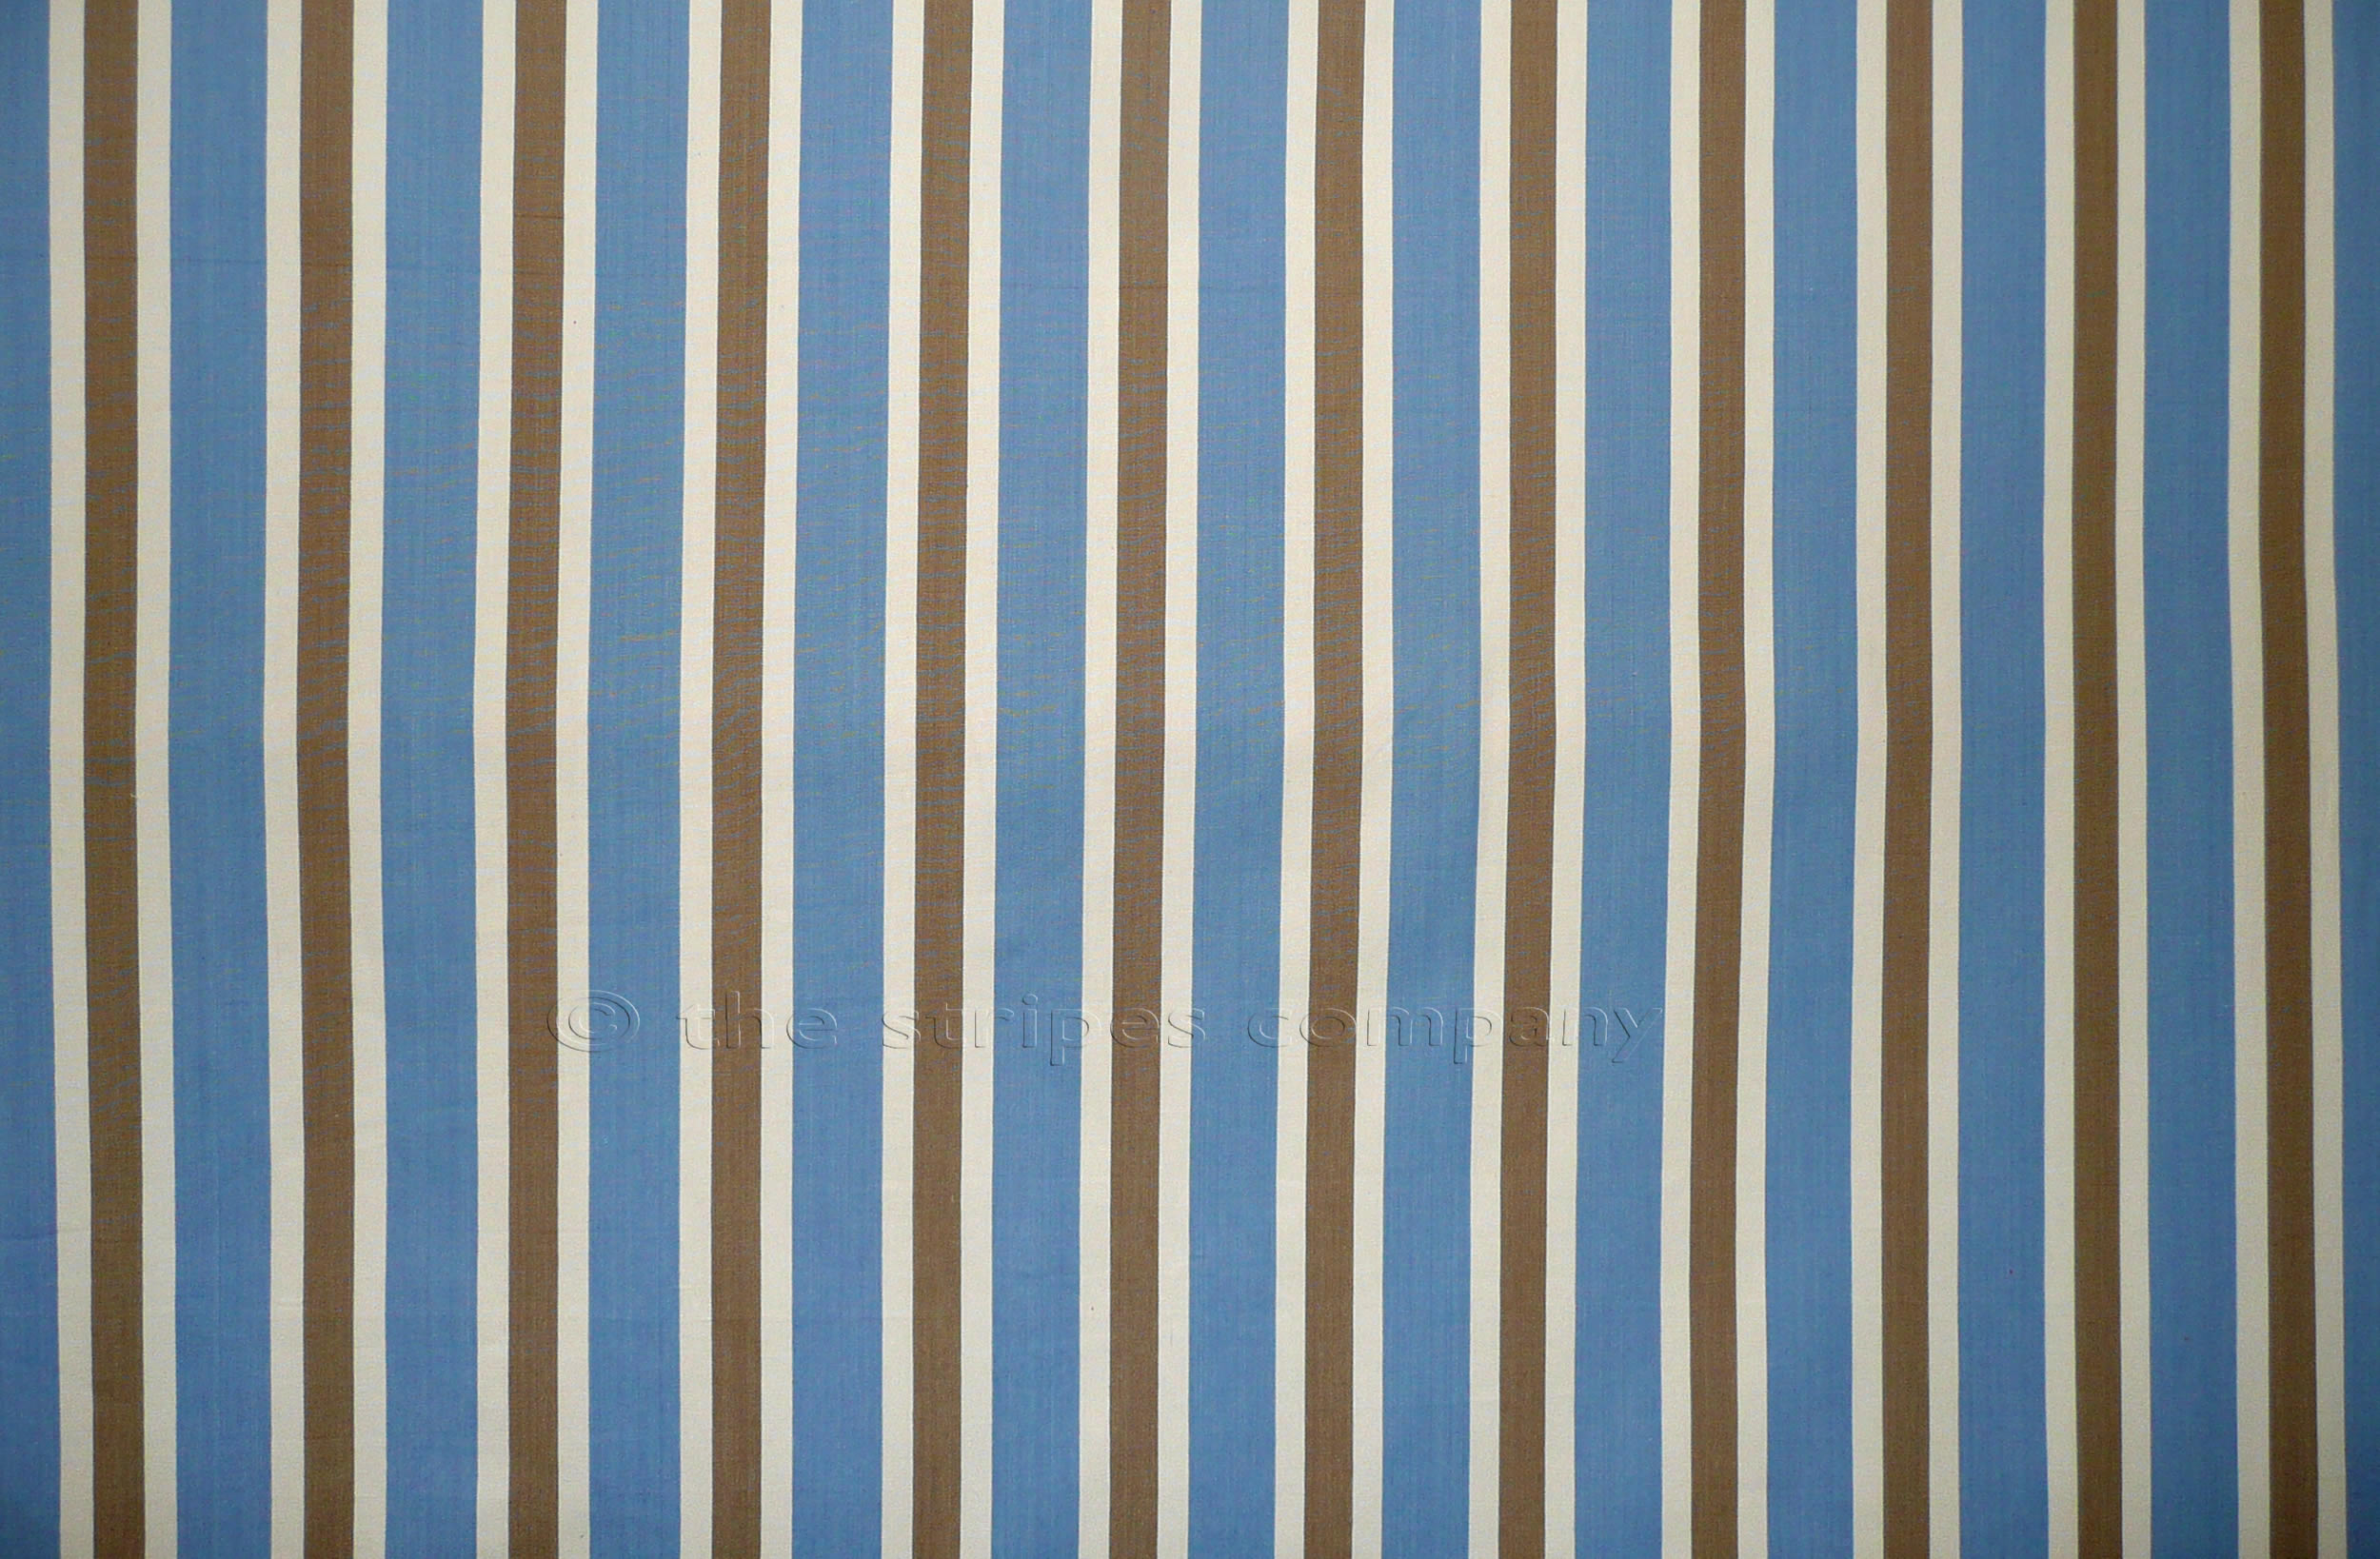 Sky Blue Striped Fabrics | Stripe Cotton Fabrics | Striped Curtain Fabrics | Upholstery Fabrics  Karate Stripes